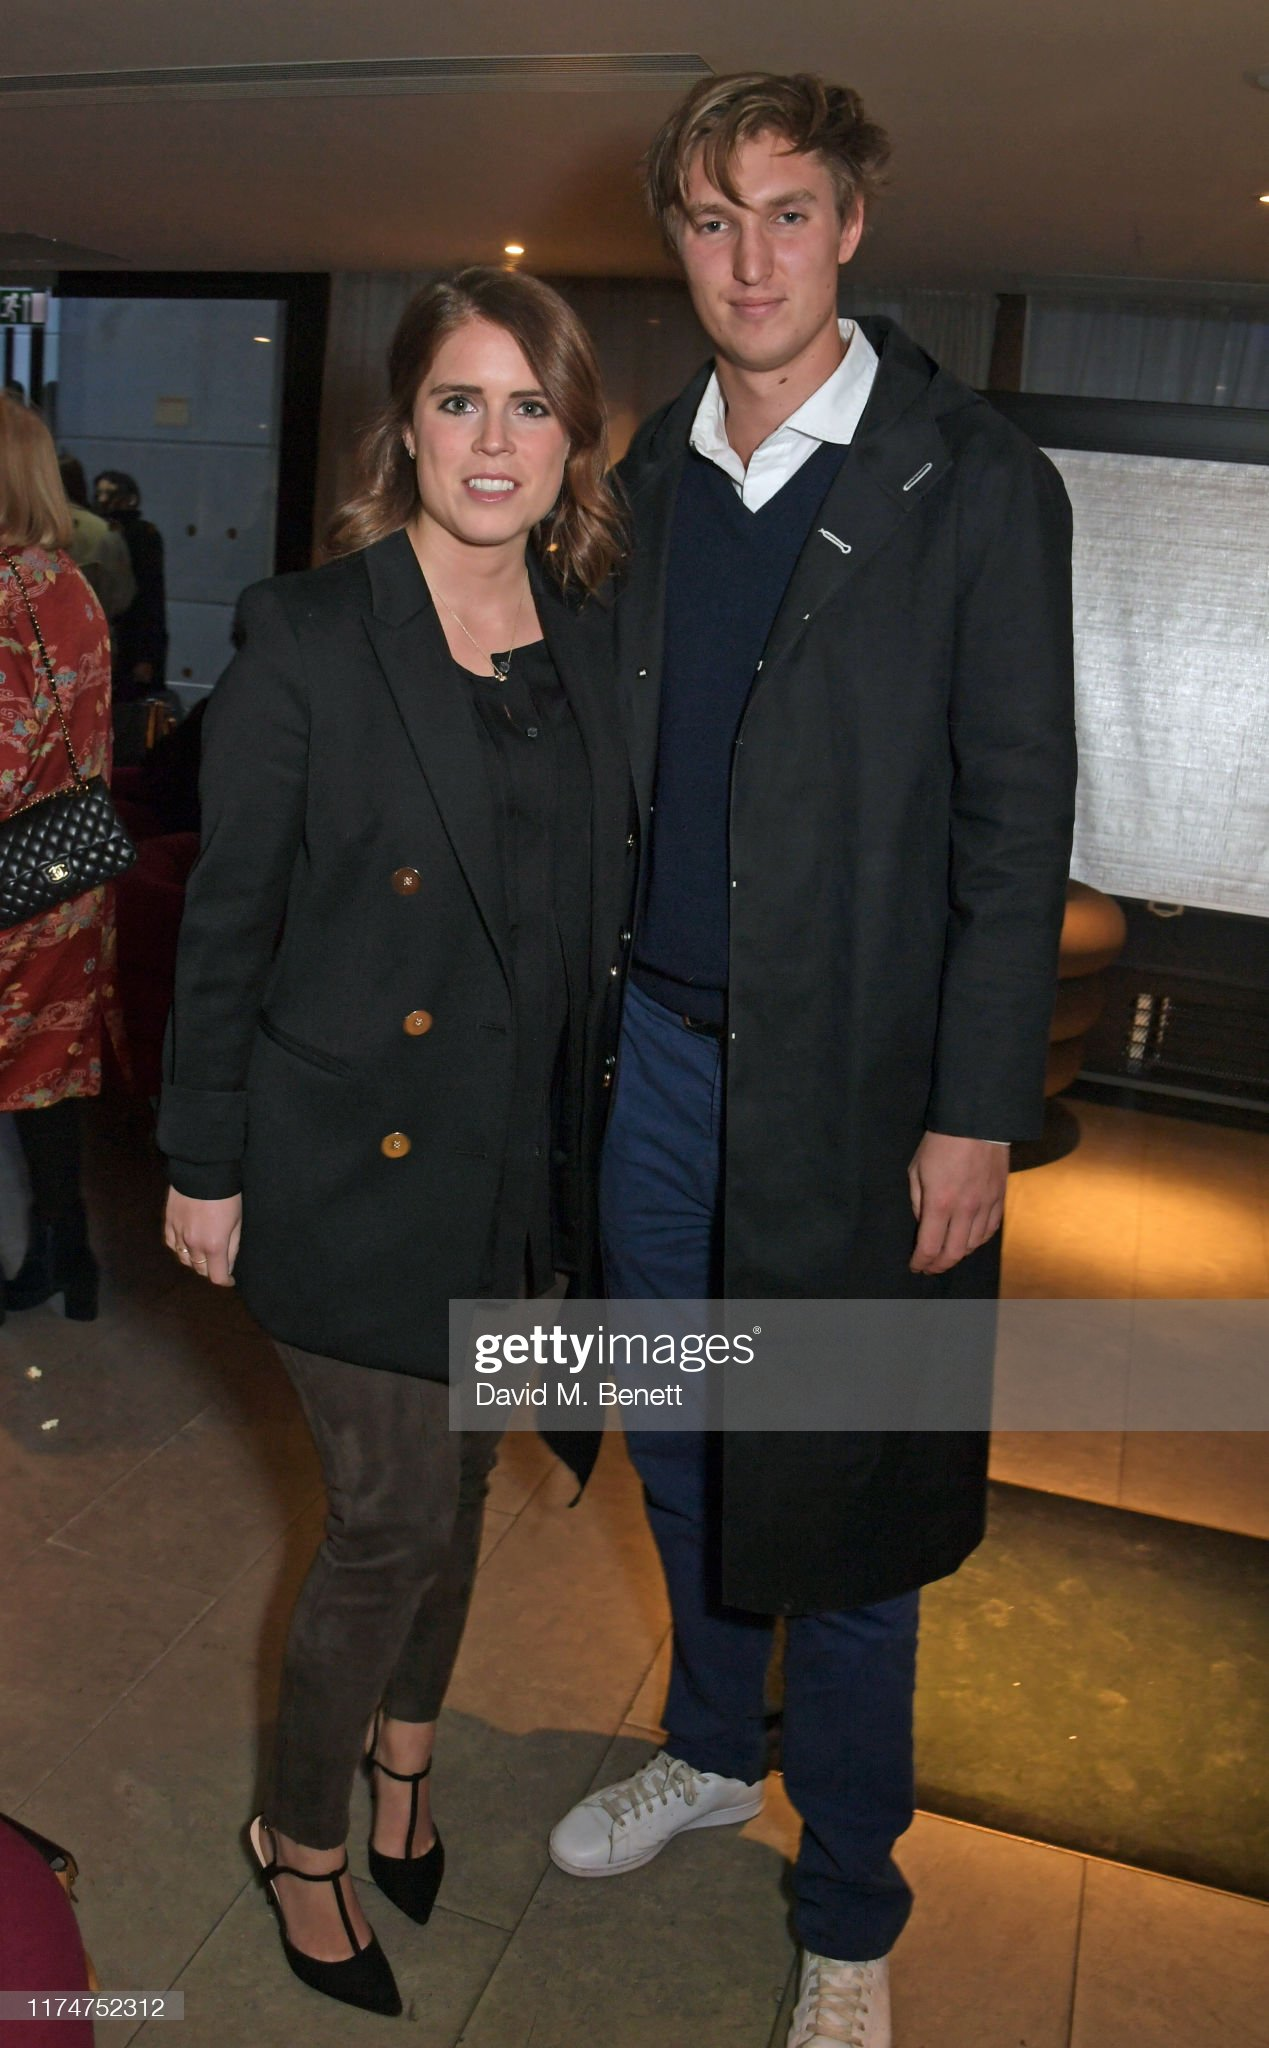 https://media.gettyimages.com/photos/princess-eugenie-of-york-and-lucas-zwirner-attend-a-special-screening-picture-id1174752312?s=2048x2048